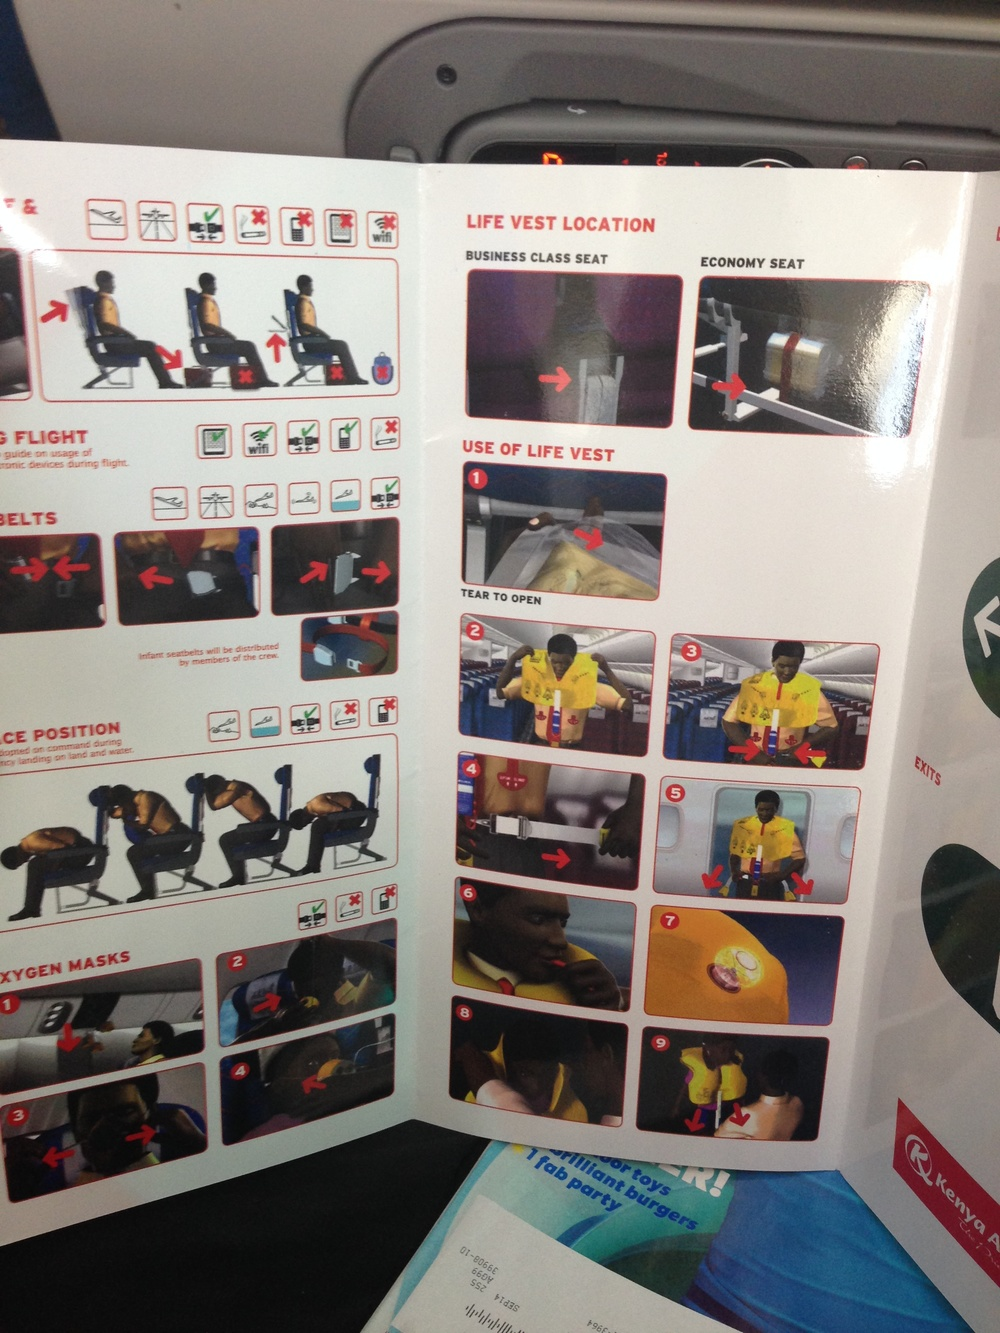 Anybody notice anything interesting about the safety instructions on Kenya Airways? Anybody?